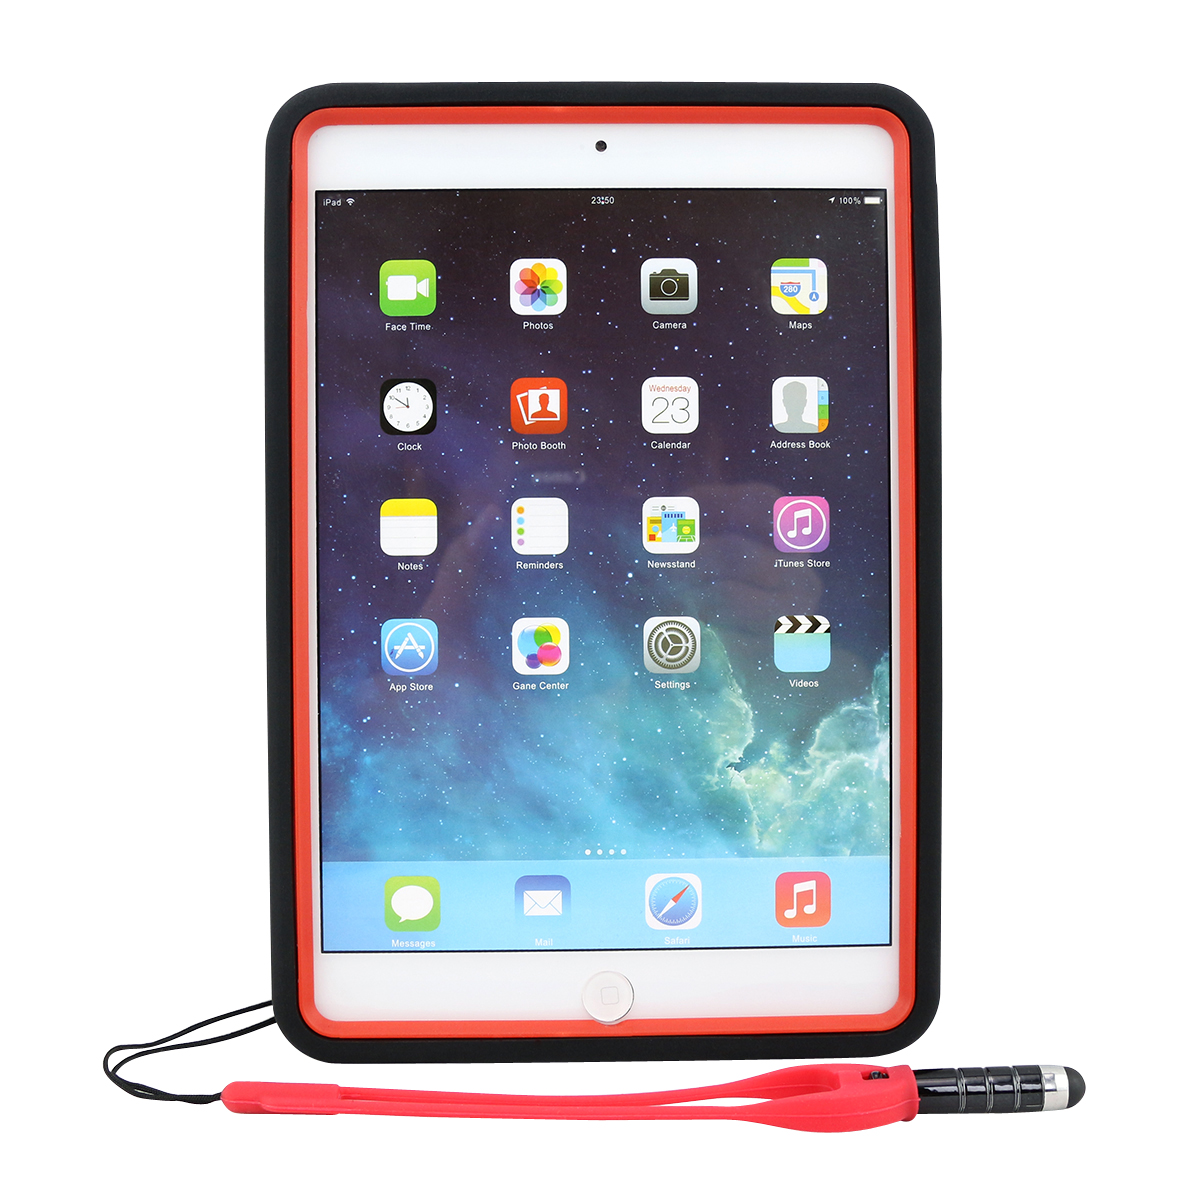 Coastacloud White Newly Style Soft Anti-Shock Shockproof Protective Back Case Holder Stand For Apple iPad Mini 2 with Retina Display / iPad Mini 3 - Free Screen Protector and Stylus